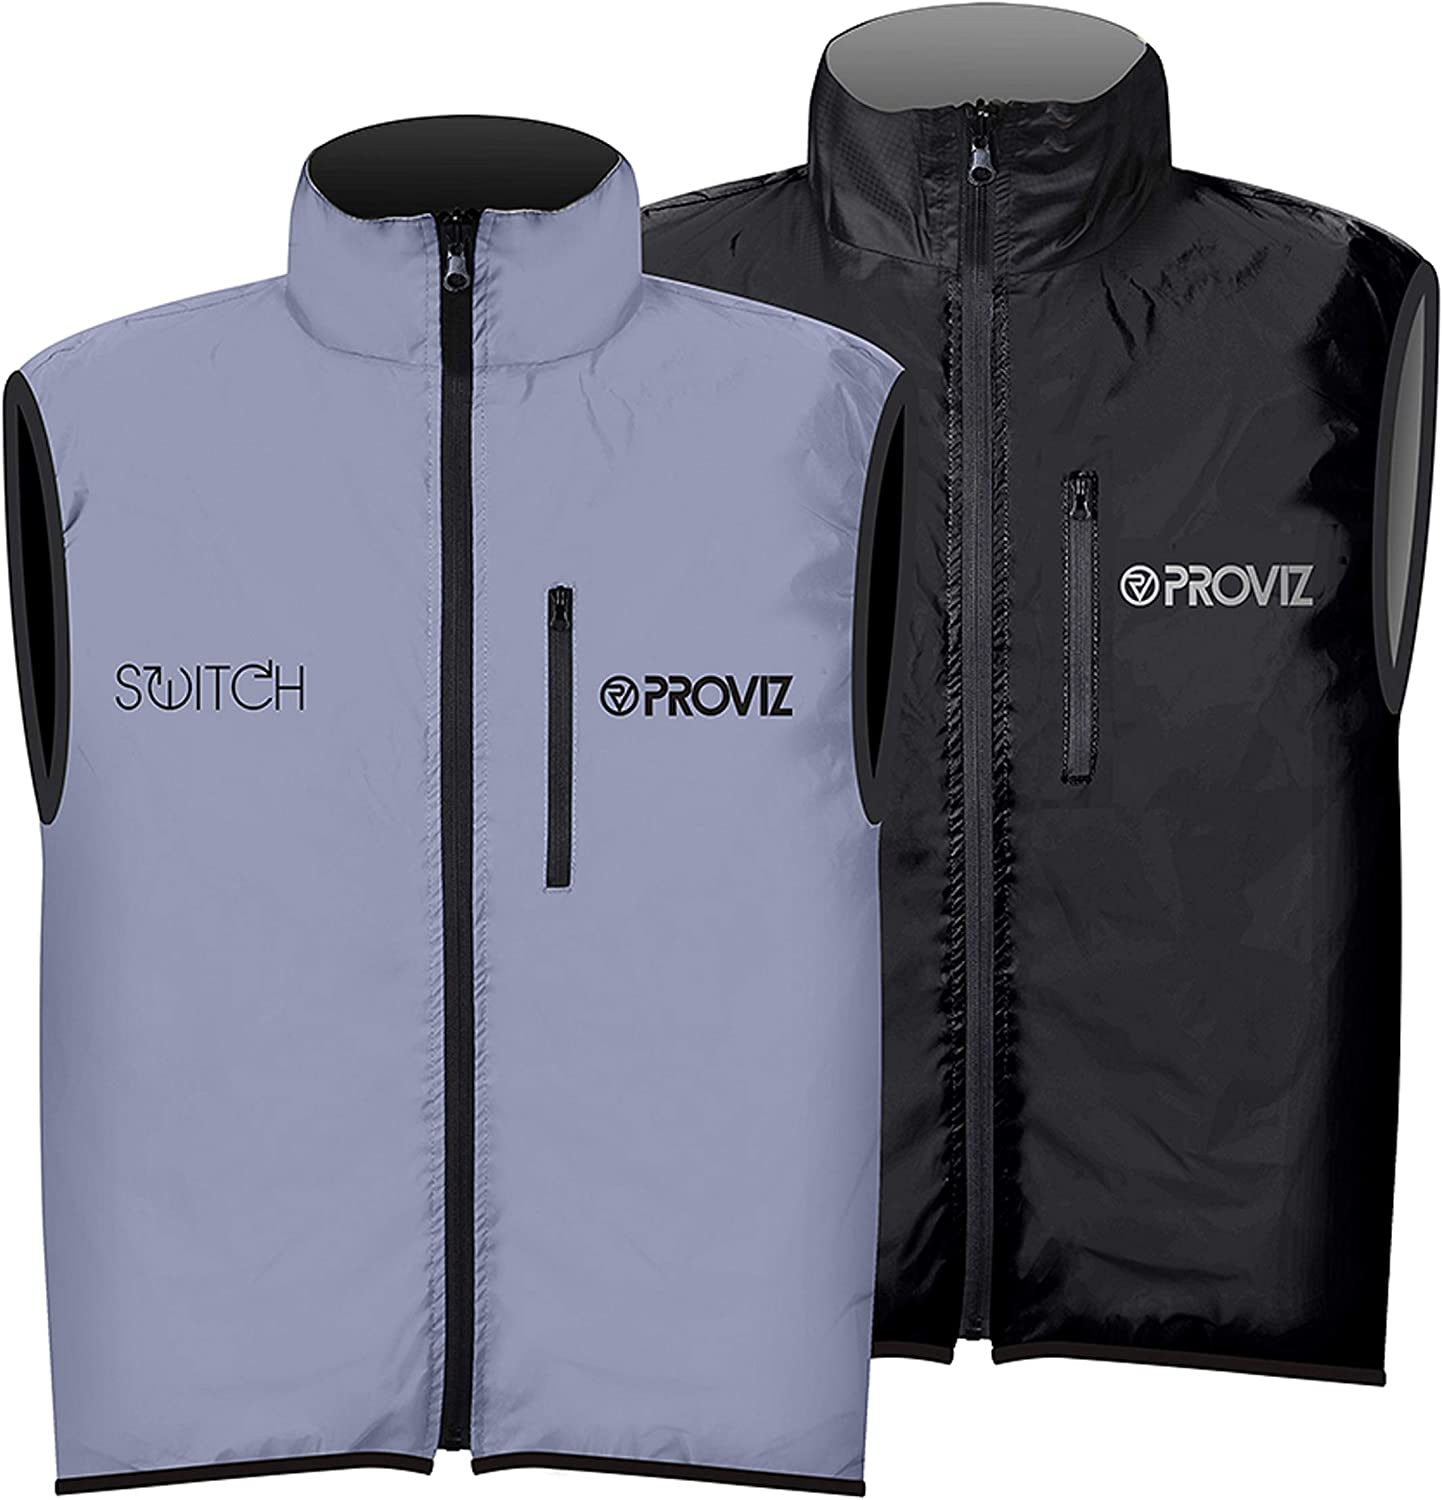 Proviz Safety and Miami Mall trust Men's Switch Cycling Vest